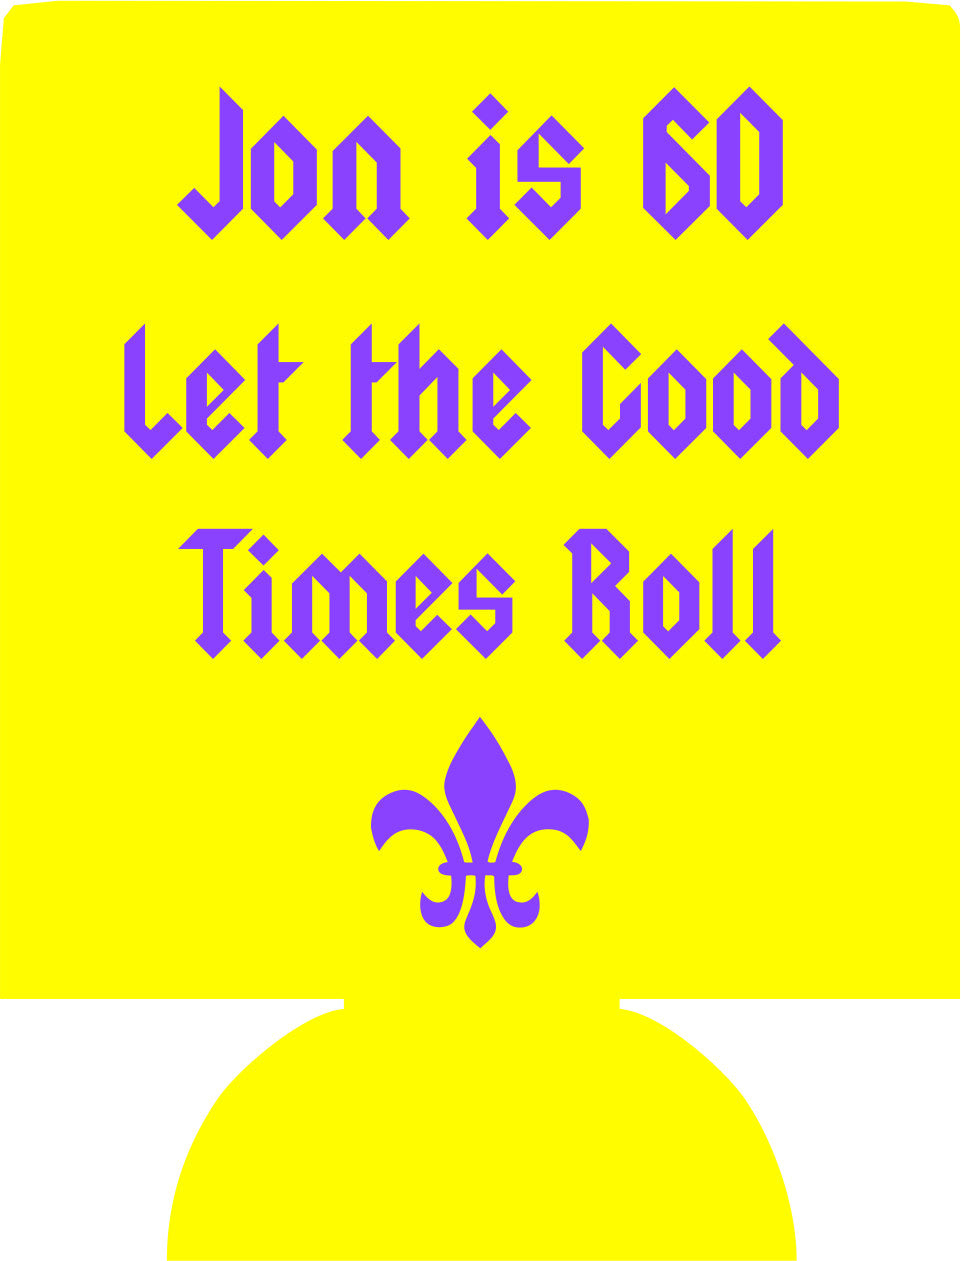 let the good times roll 60th Birthday Koozies can coolers